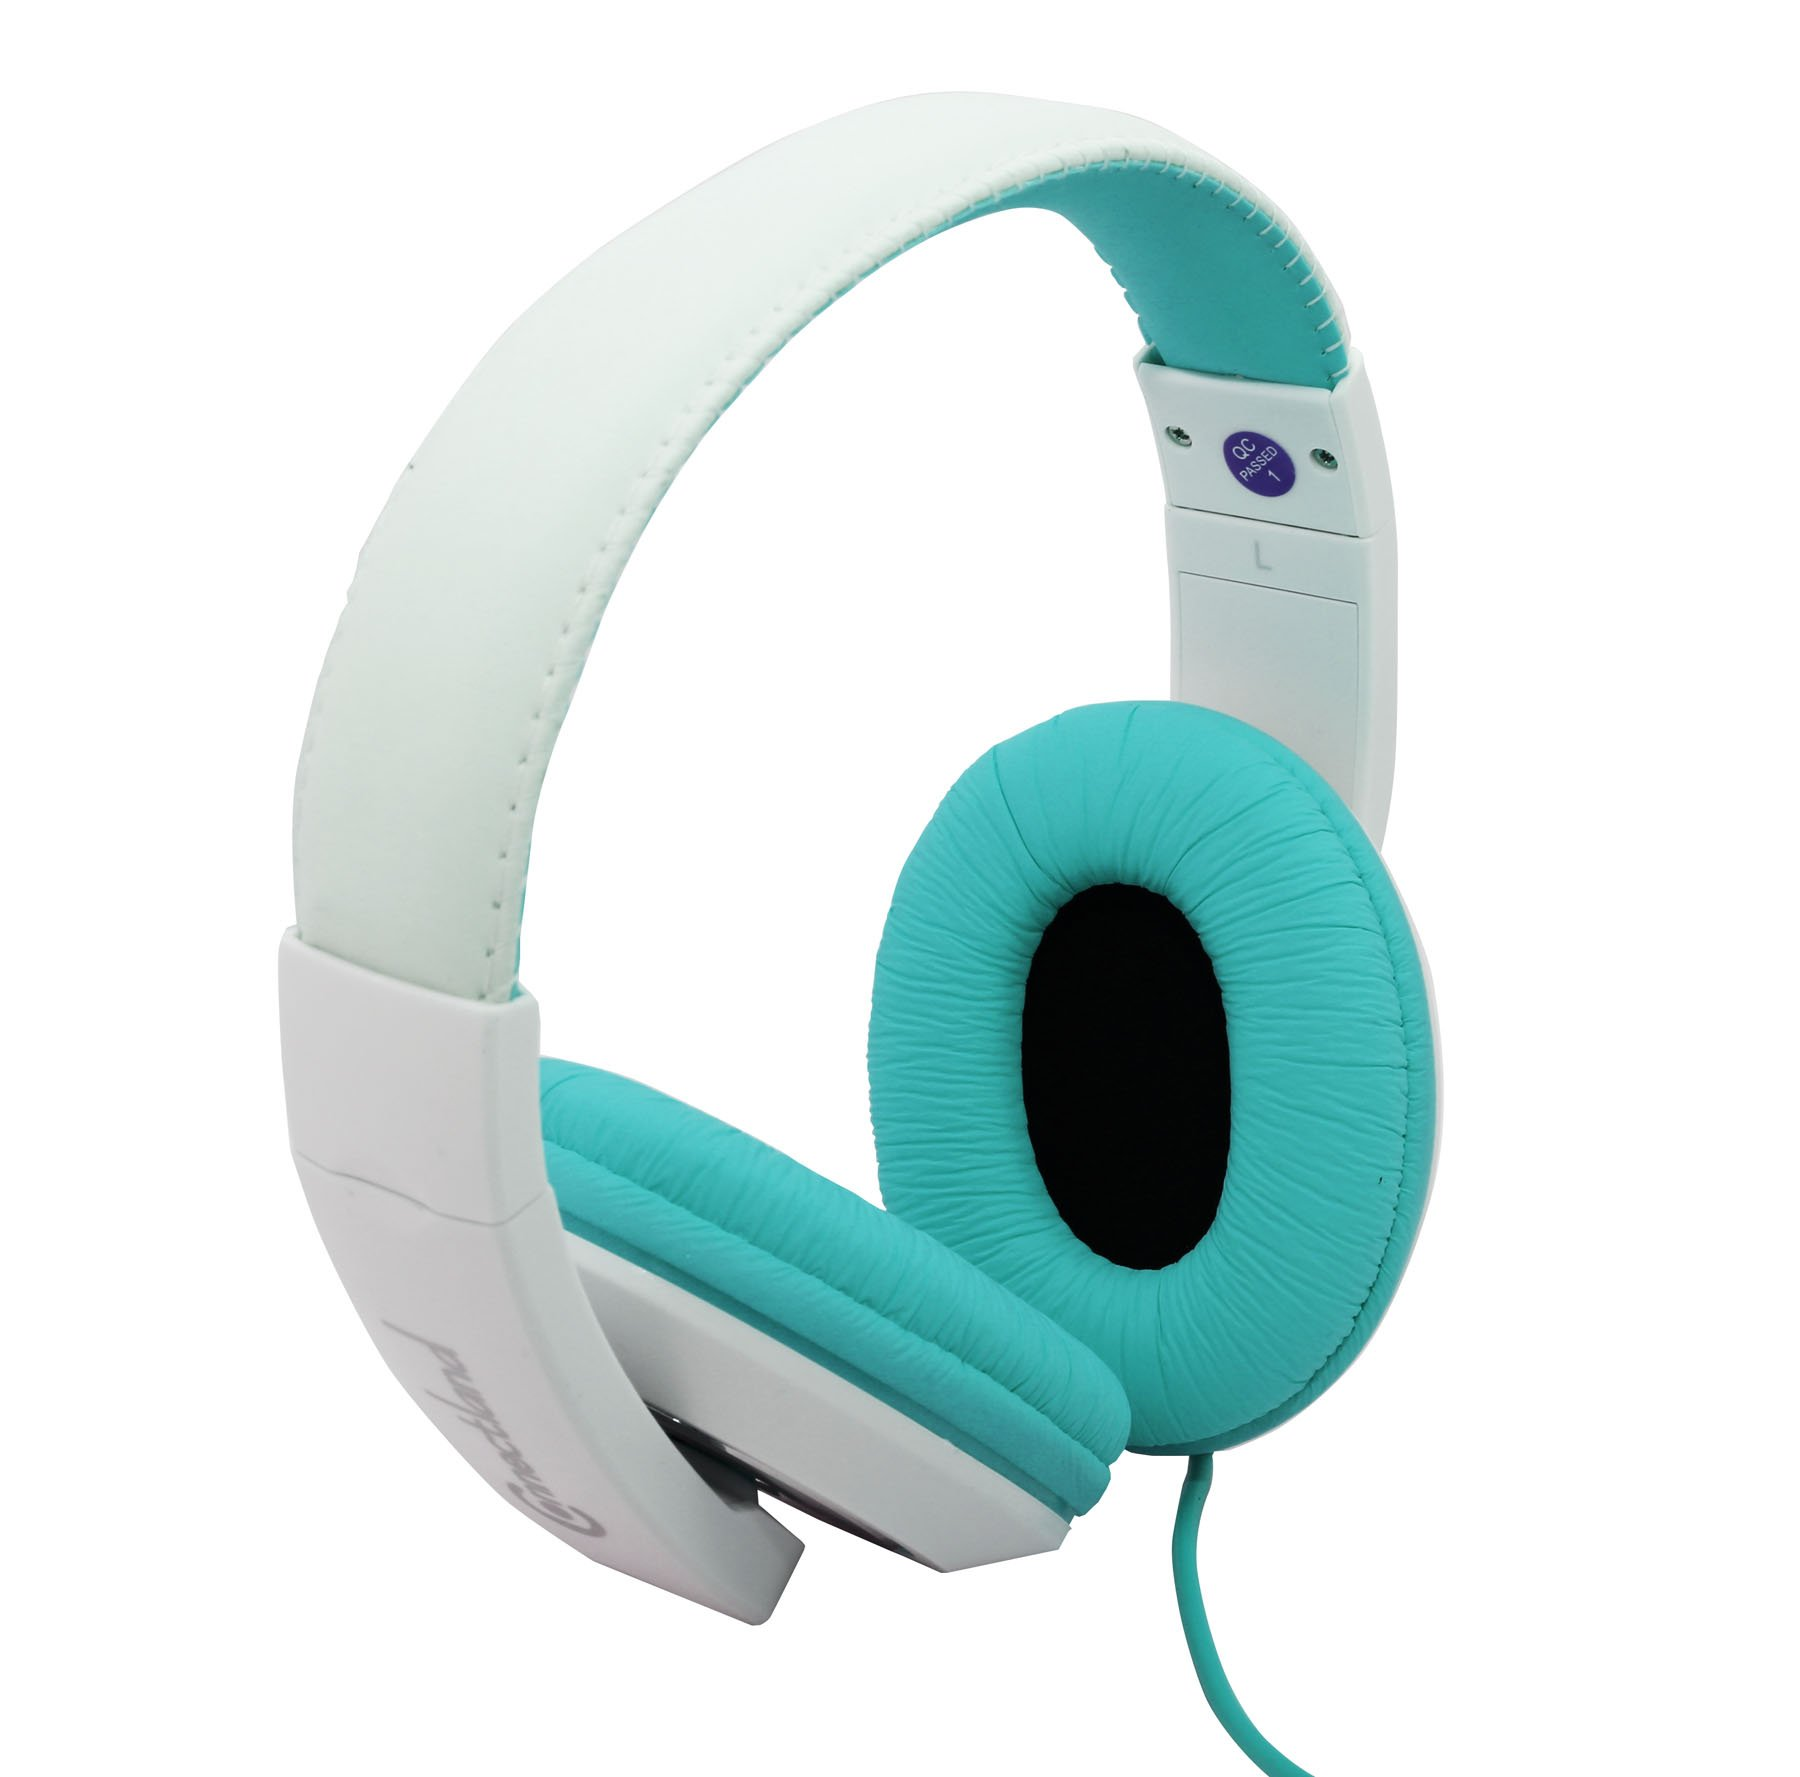 Connectland Stereo Wired Headphone & Microphone Lightweight 40mm Speaker Music Gaming Stylish Teal CL-AUD63035 by Connectland (Image #1)